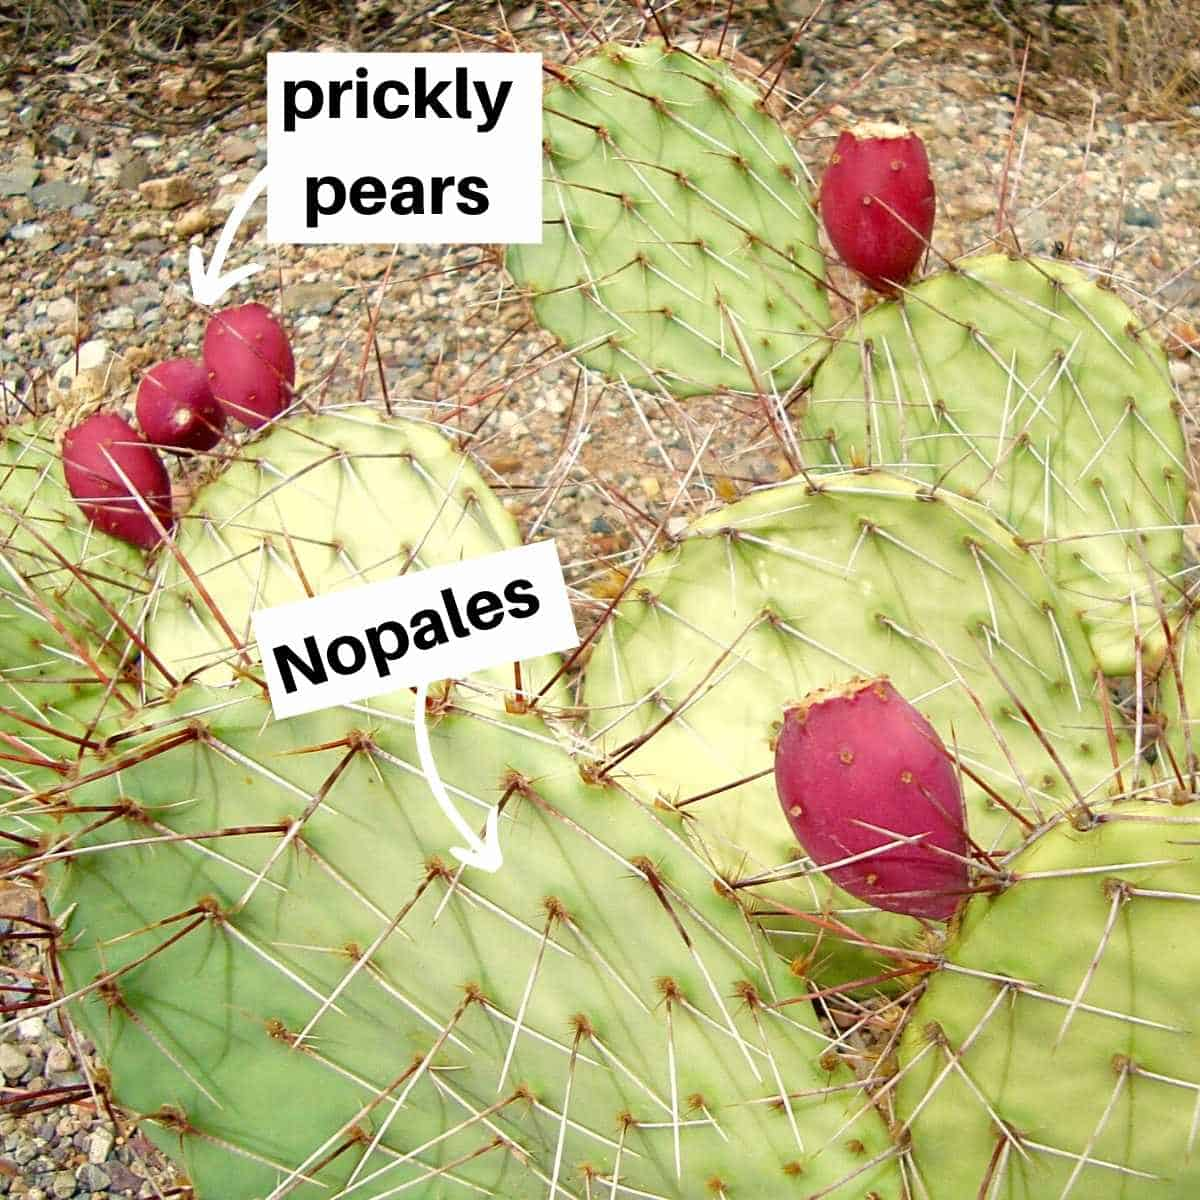 parts of the cactus - Are Nopales Keto